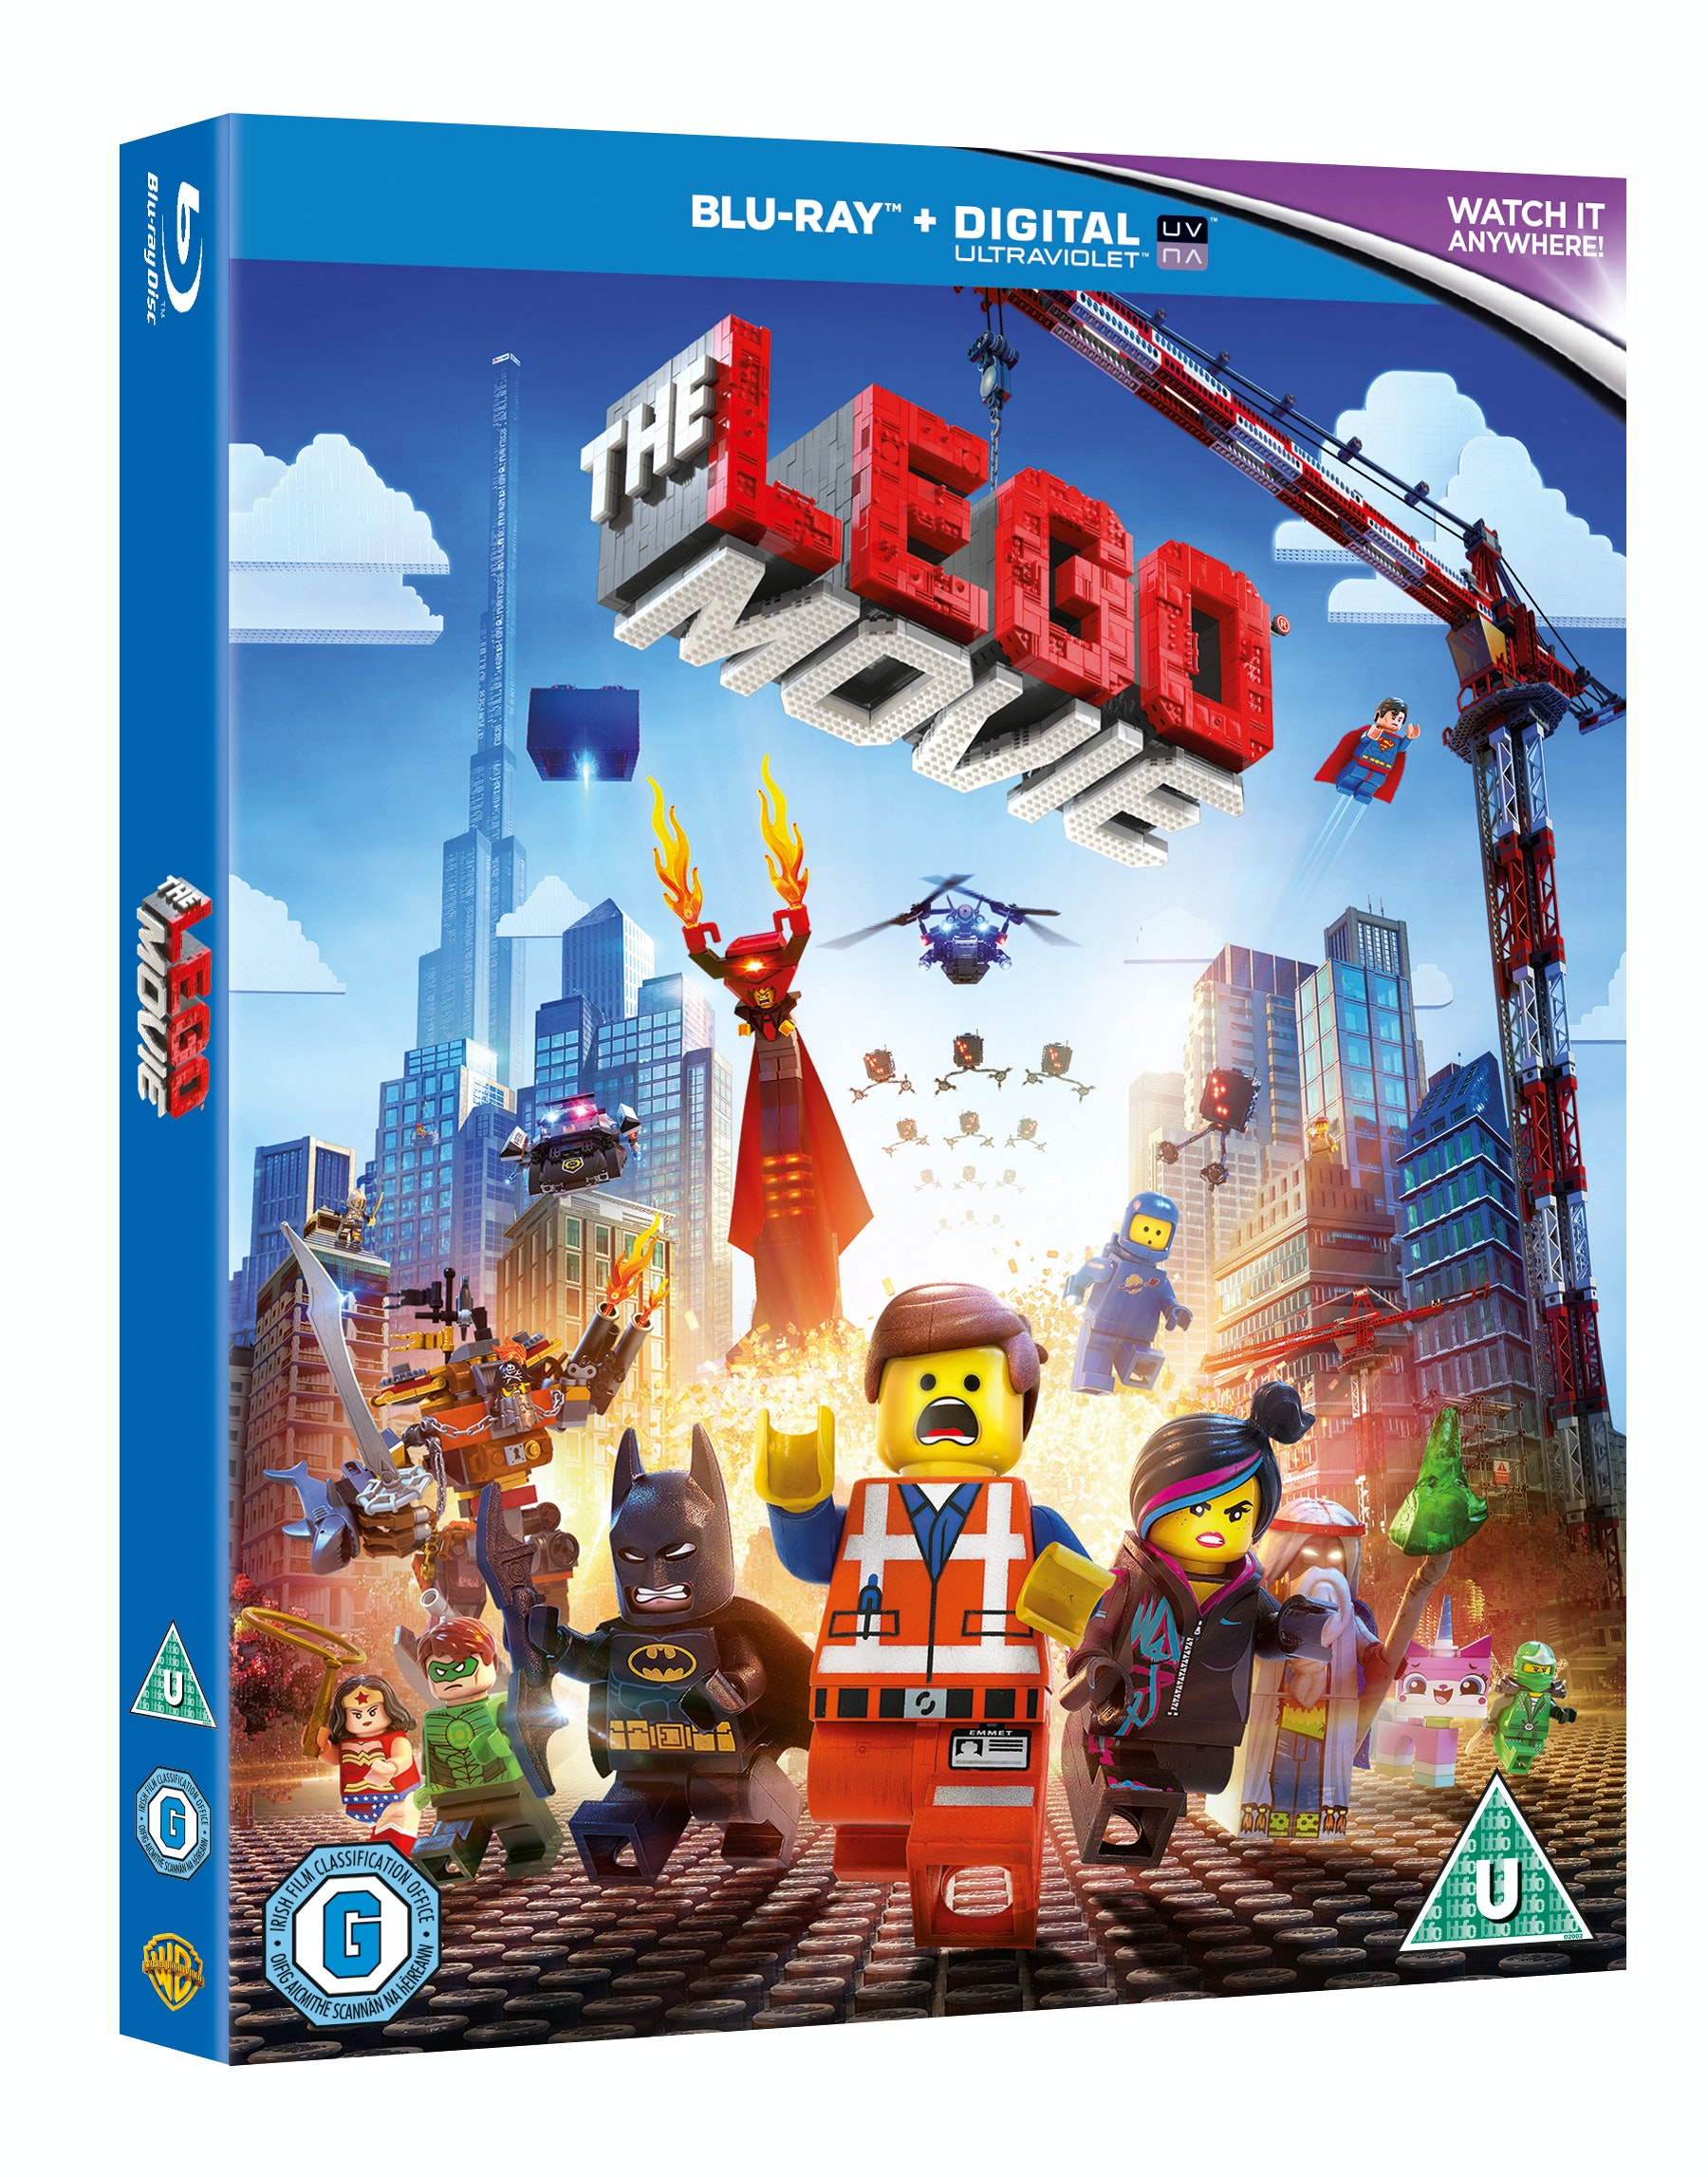 The LEGO Movie Blu-ray sweepstakes